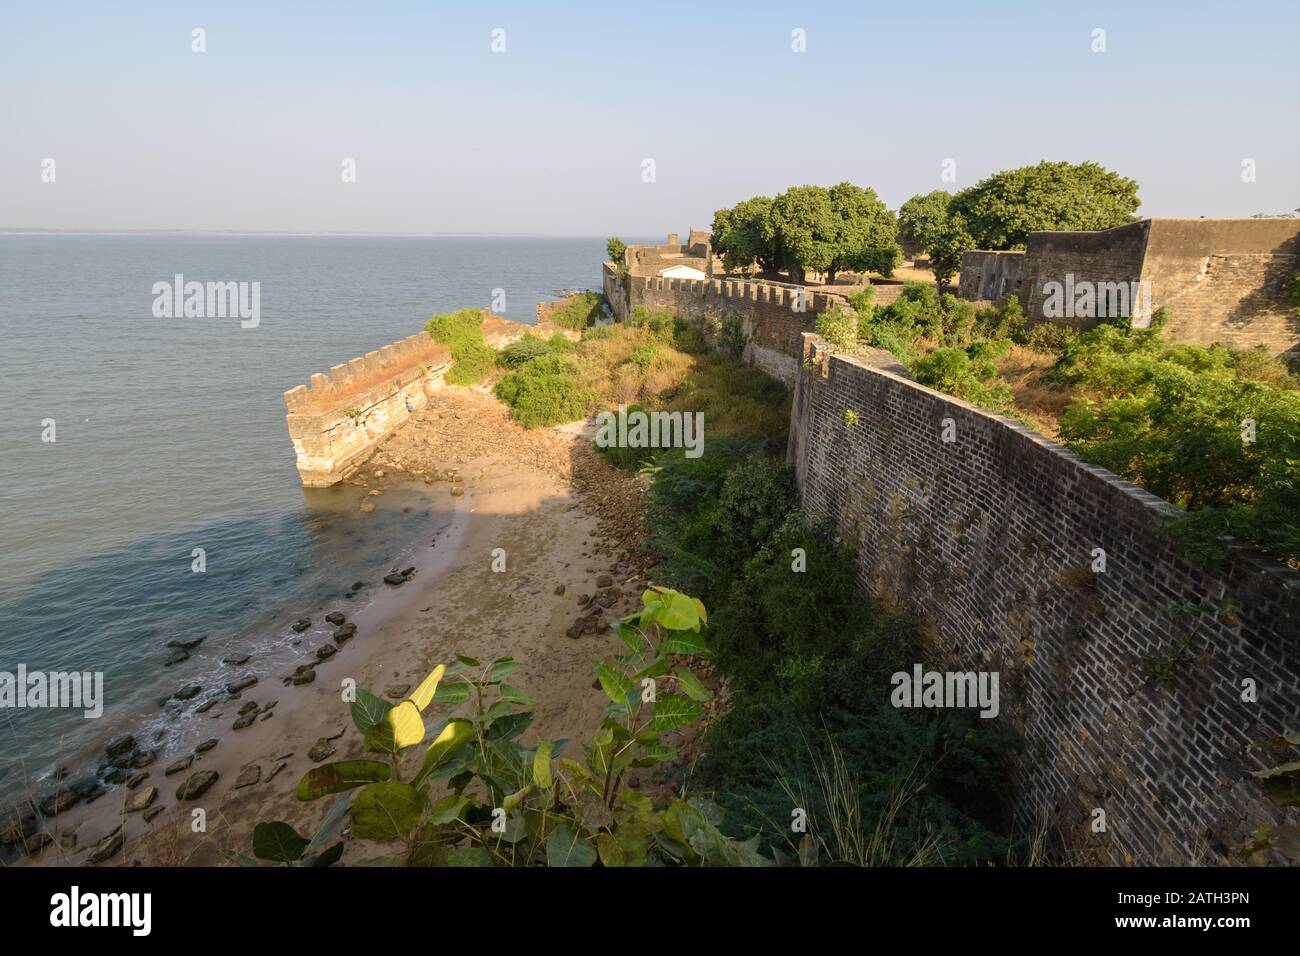 The exterior ramparts and facade of the colonial architecture of the Portuguese era fort in Diu Island. Stock Photo